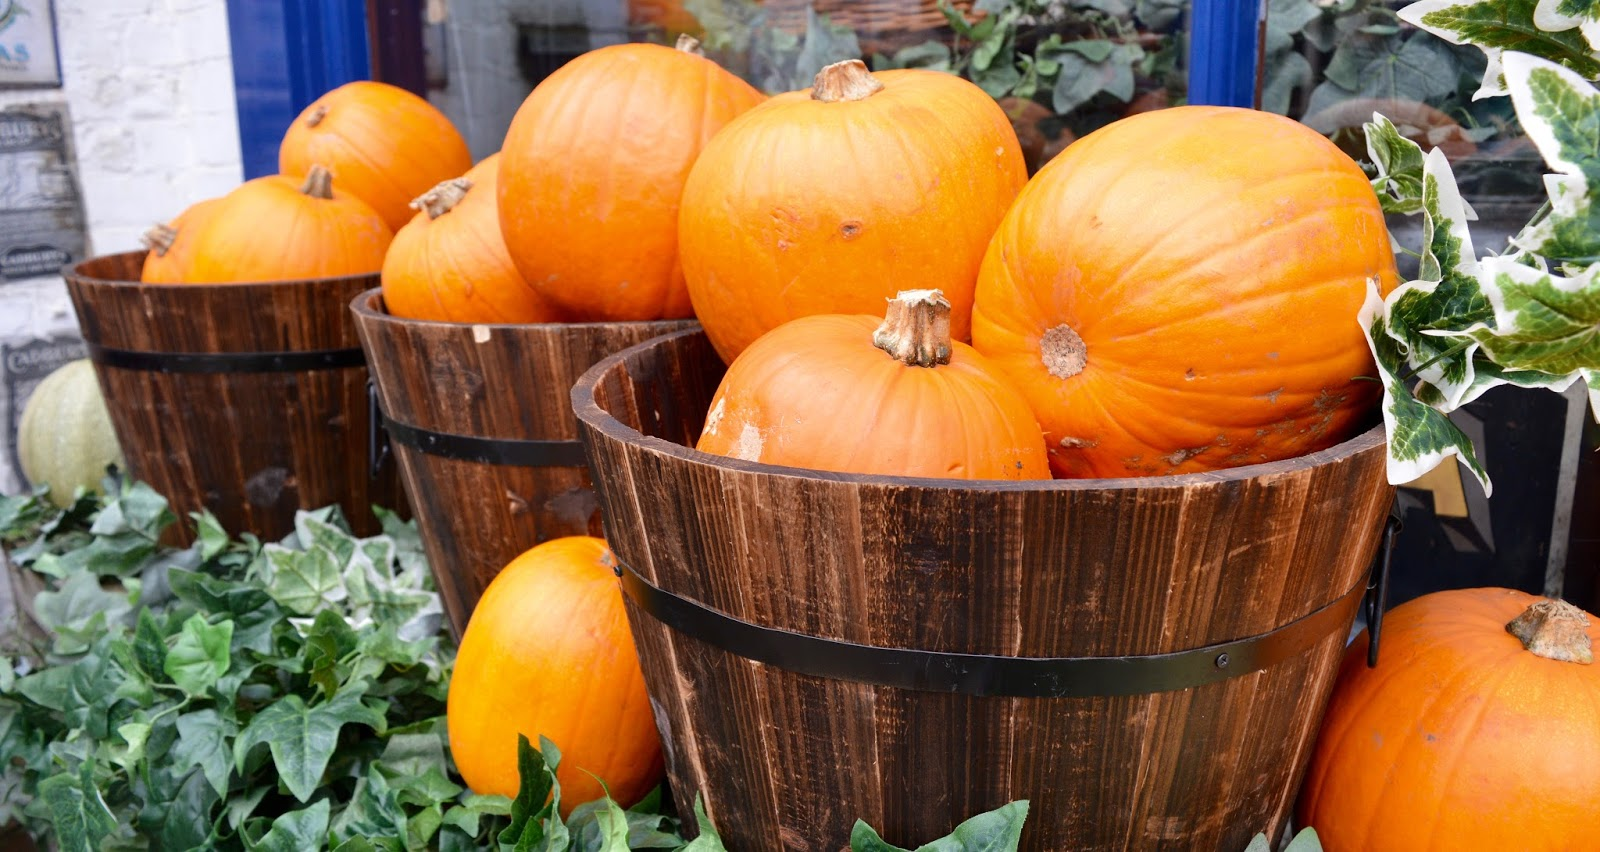 Half Term Hocus Pocus at Preston Park | The North East's very own Diagon Alley - pumpkins